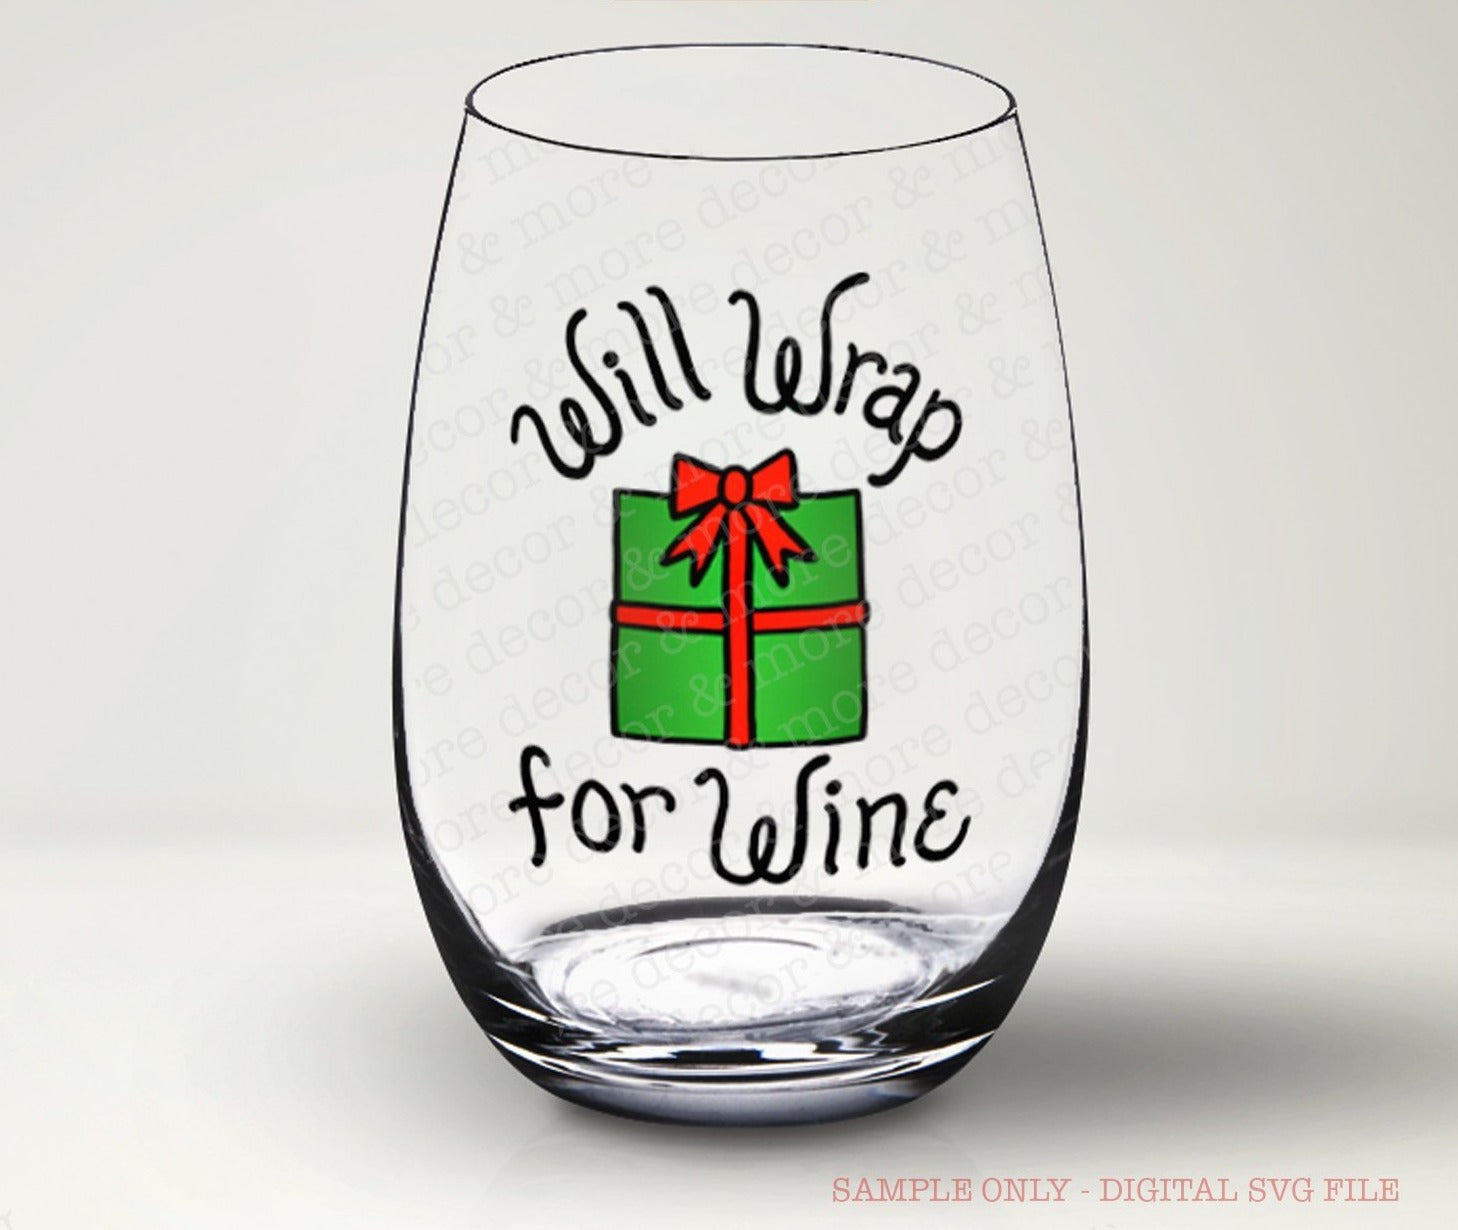 CHRISTMAS WINE SVG FILE, Will Wrap for Wine SVG File, Funny Christmas Wine Glass SVG File, Funny Christmas SVG Cut File, Svg File for Wine Glass